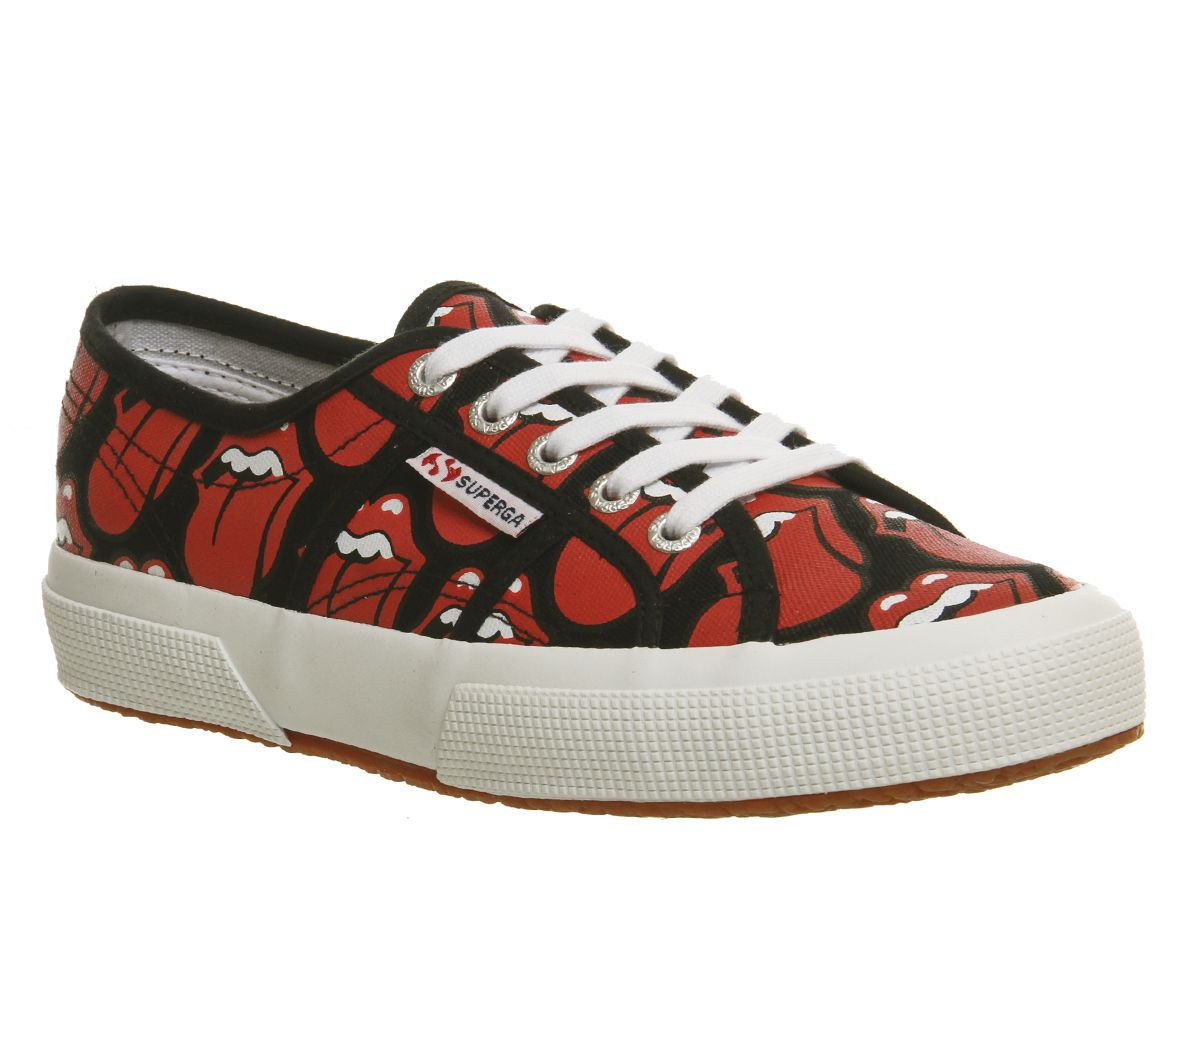 20cf650d3fb9f Superga 2750 Rolling Stones Black Red Lips - Hers trainers